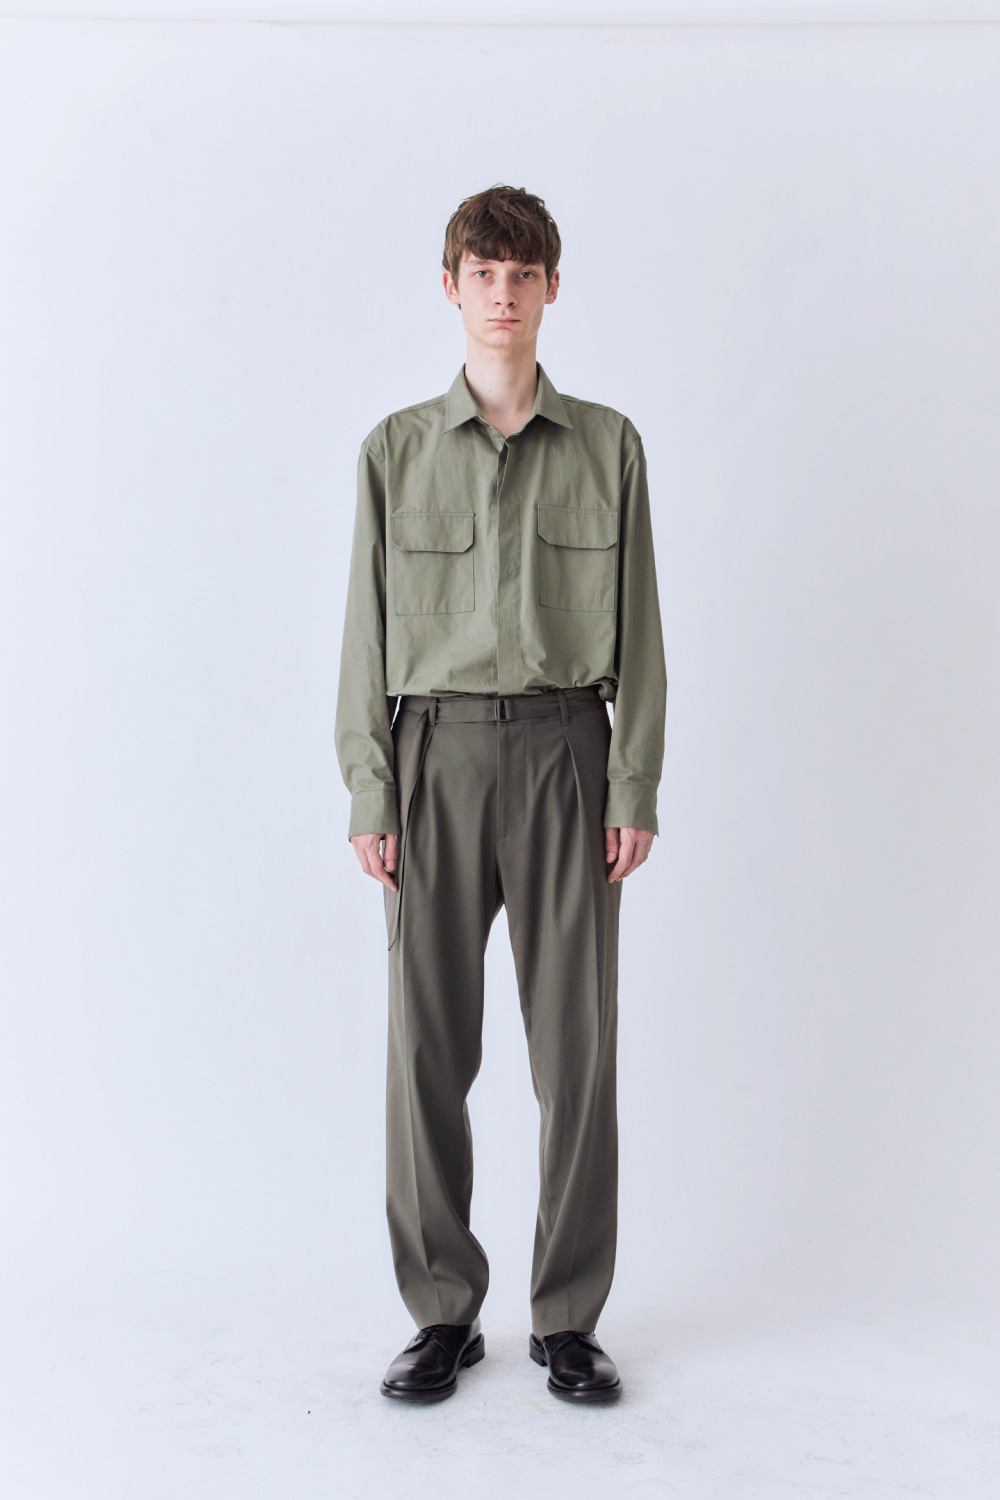 OURSCOPE아워스코프 [Restock] Belted Crease Pants (Light Olive)